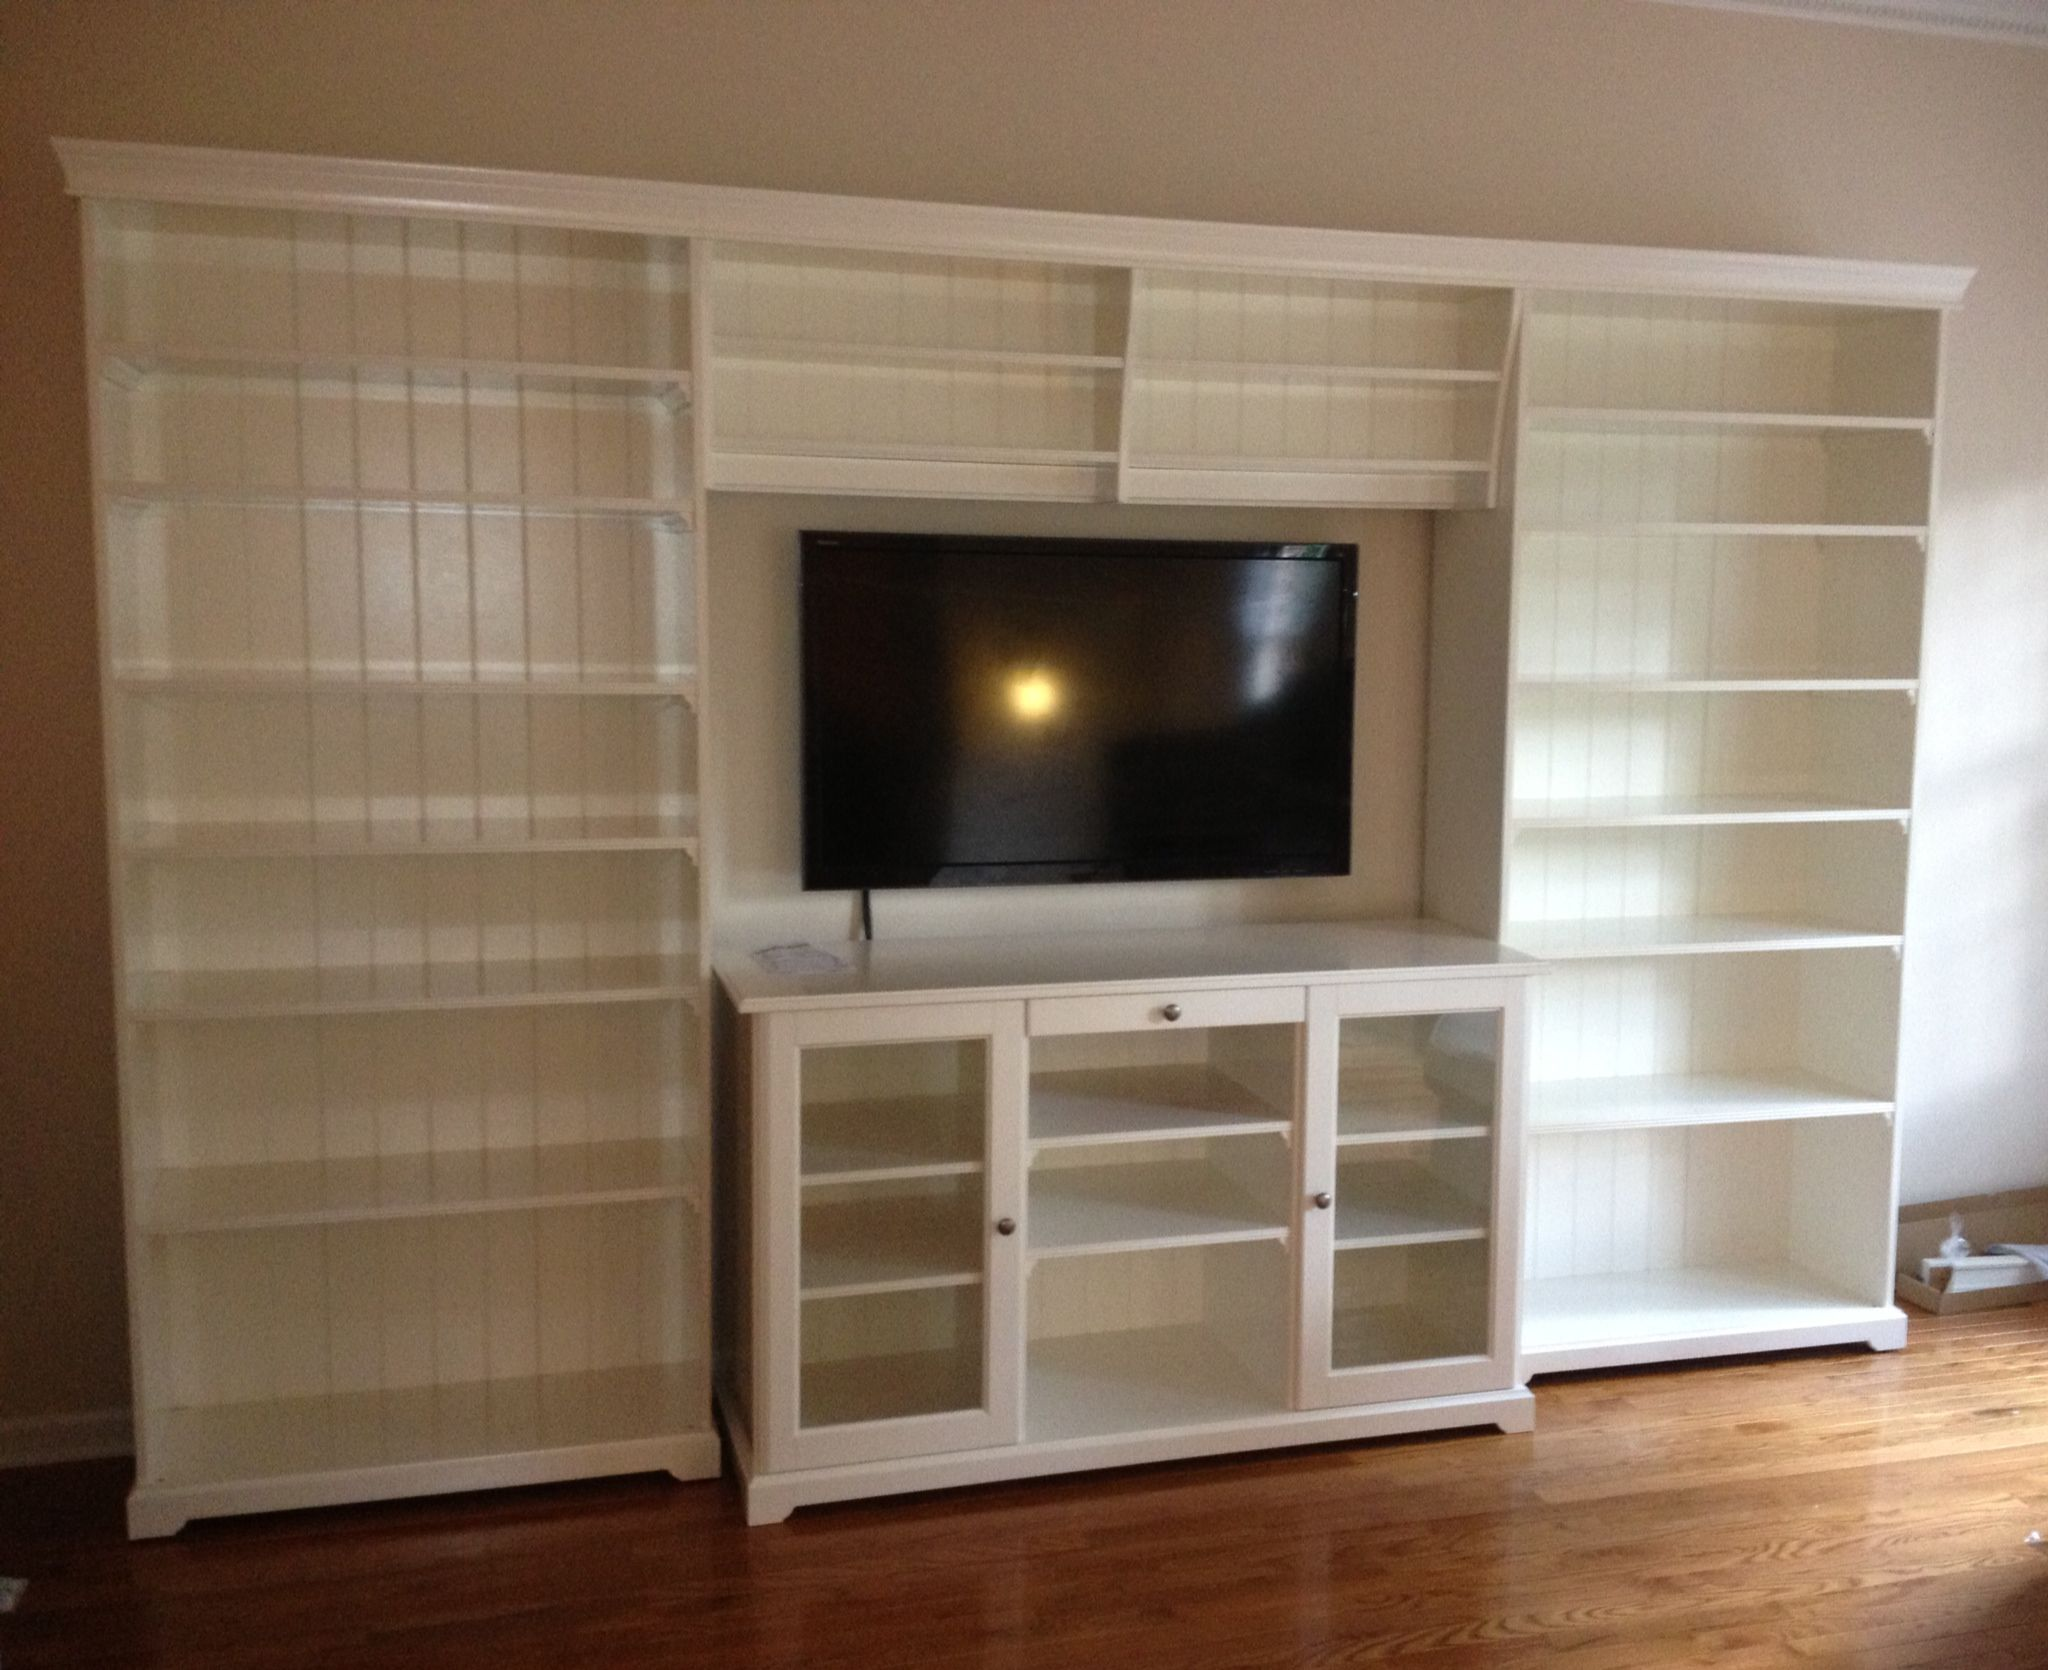 Liatorp tv unit ideas for the house pinterest for Liatorp bookcase hack